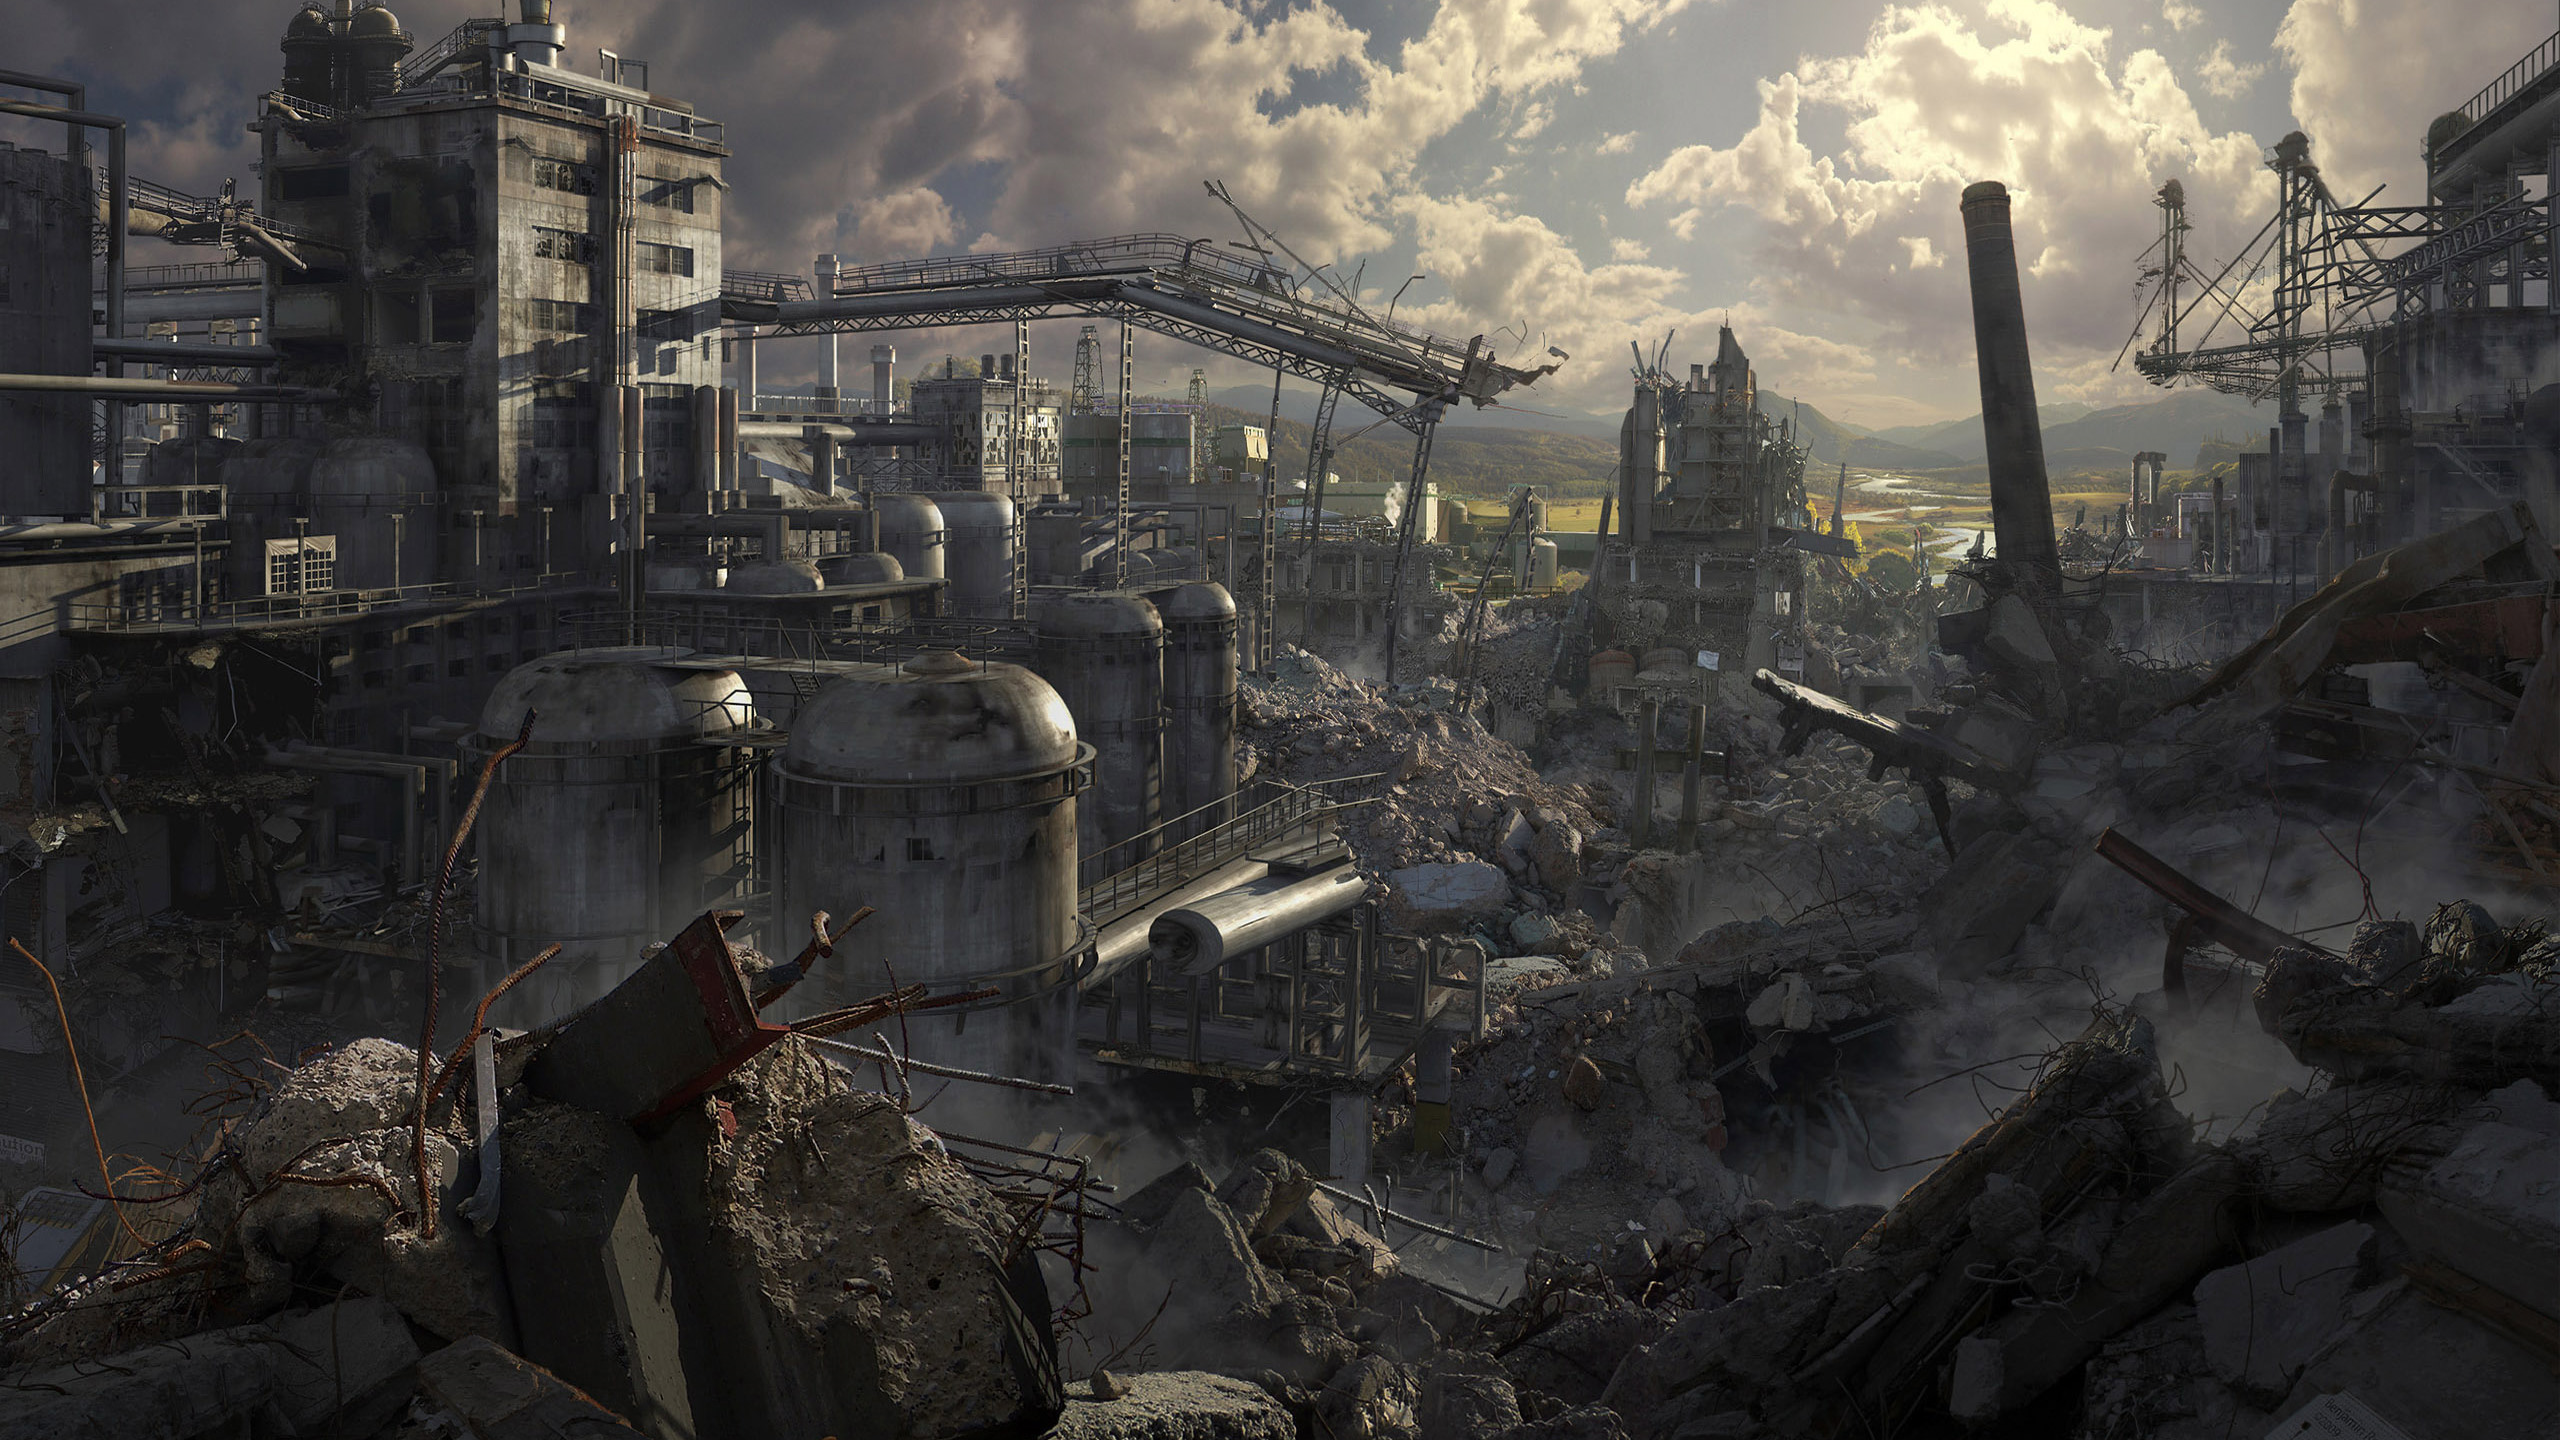 Apocalyptic Pics, Sci Fi Collection